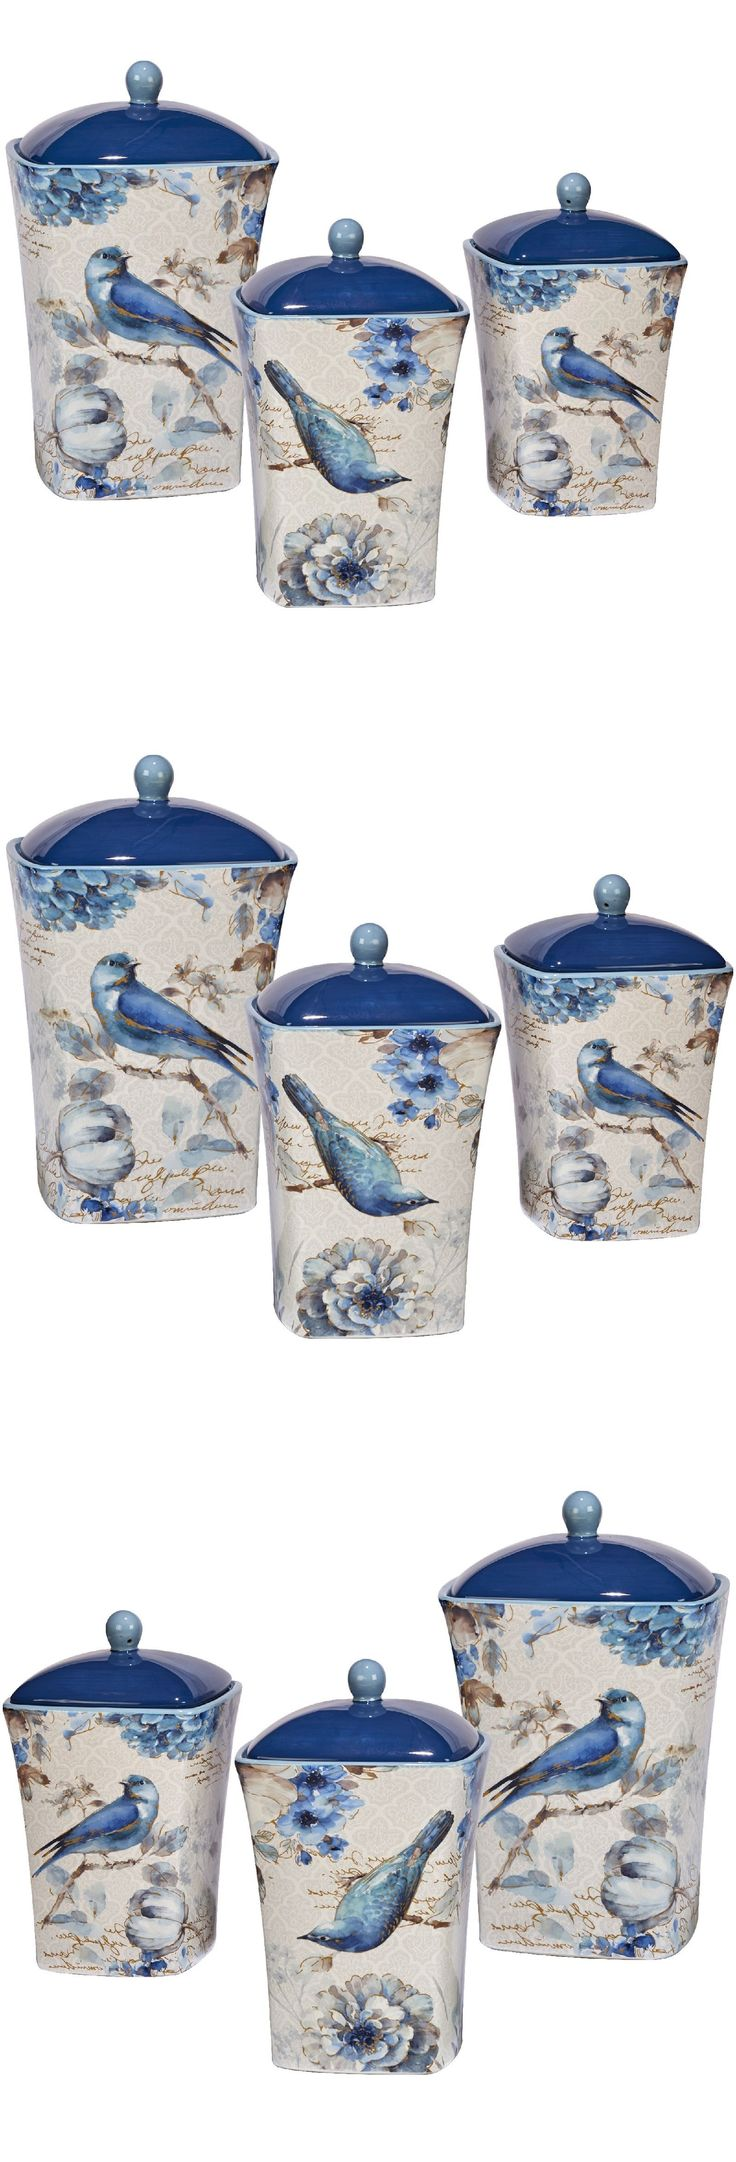 best 25 kitchen canisters and jars ideas on pinterest country canisters and jars 20654 kitchen canister jar set bluebird and floral ceramic hand painted bird